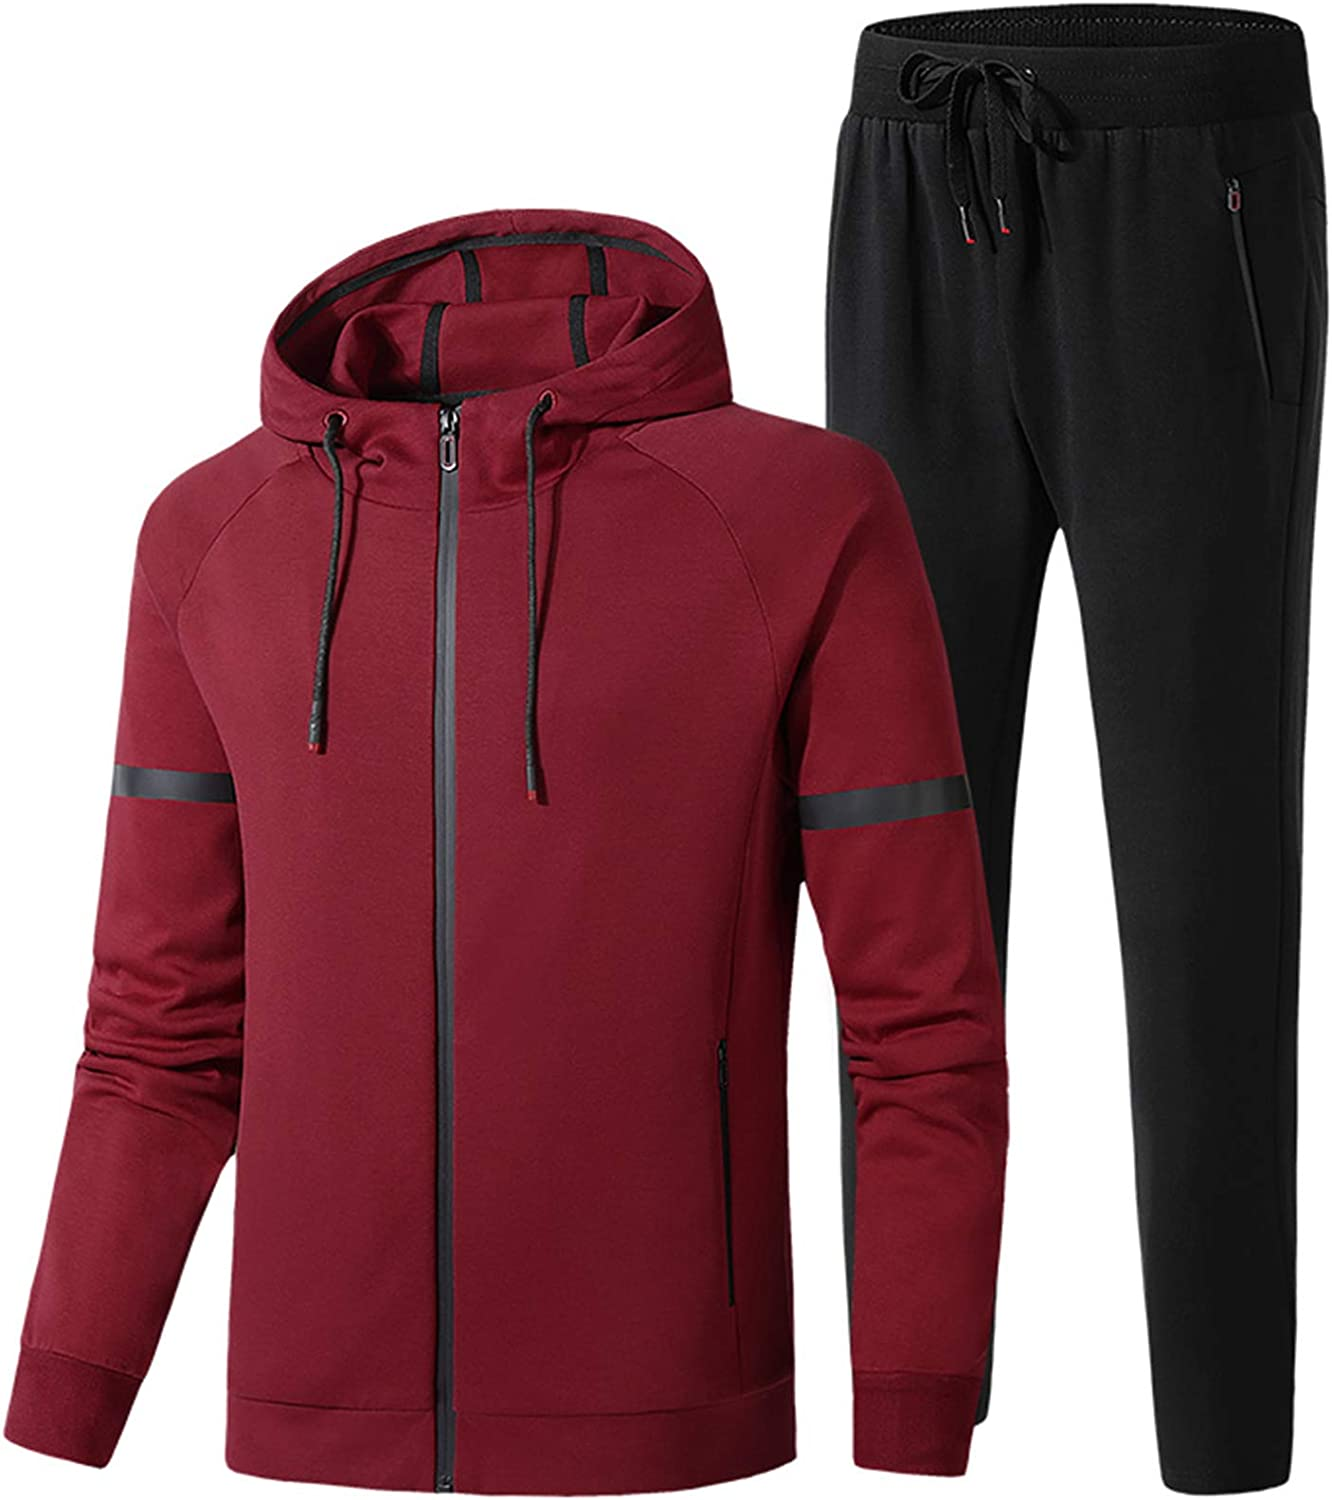 DOSLAVIDA Men's Hooded Sweatsuits Suits 2021 Limited price Casual Athletic Jogging